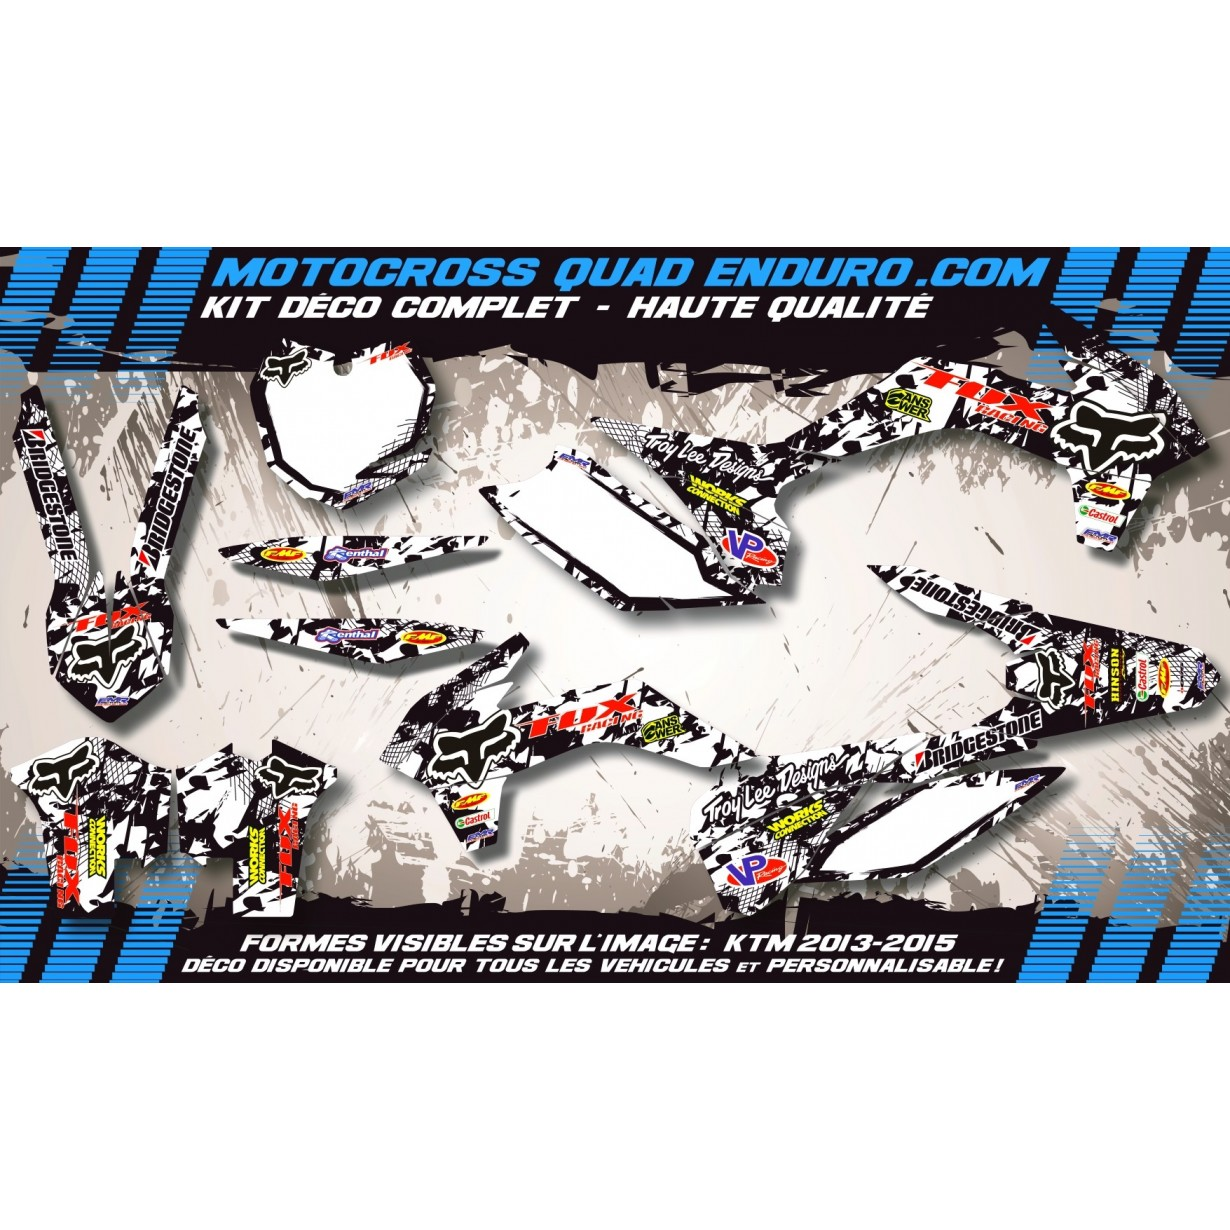 KIT DÉCO Perso FS 06-08 FOX MA9F